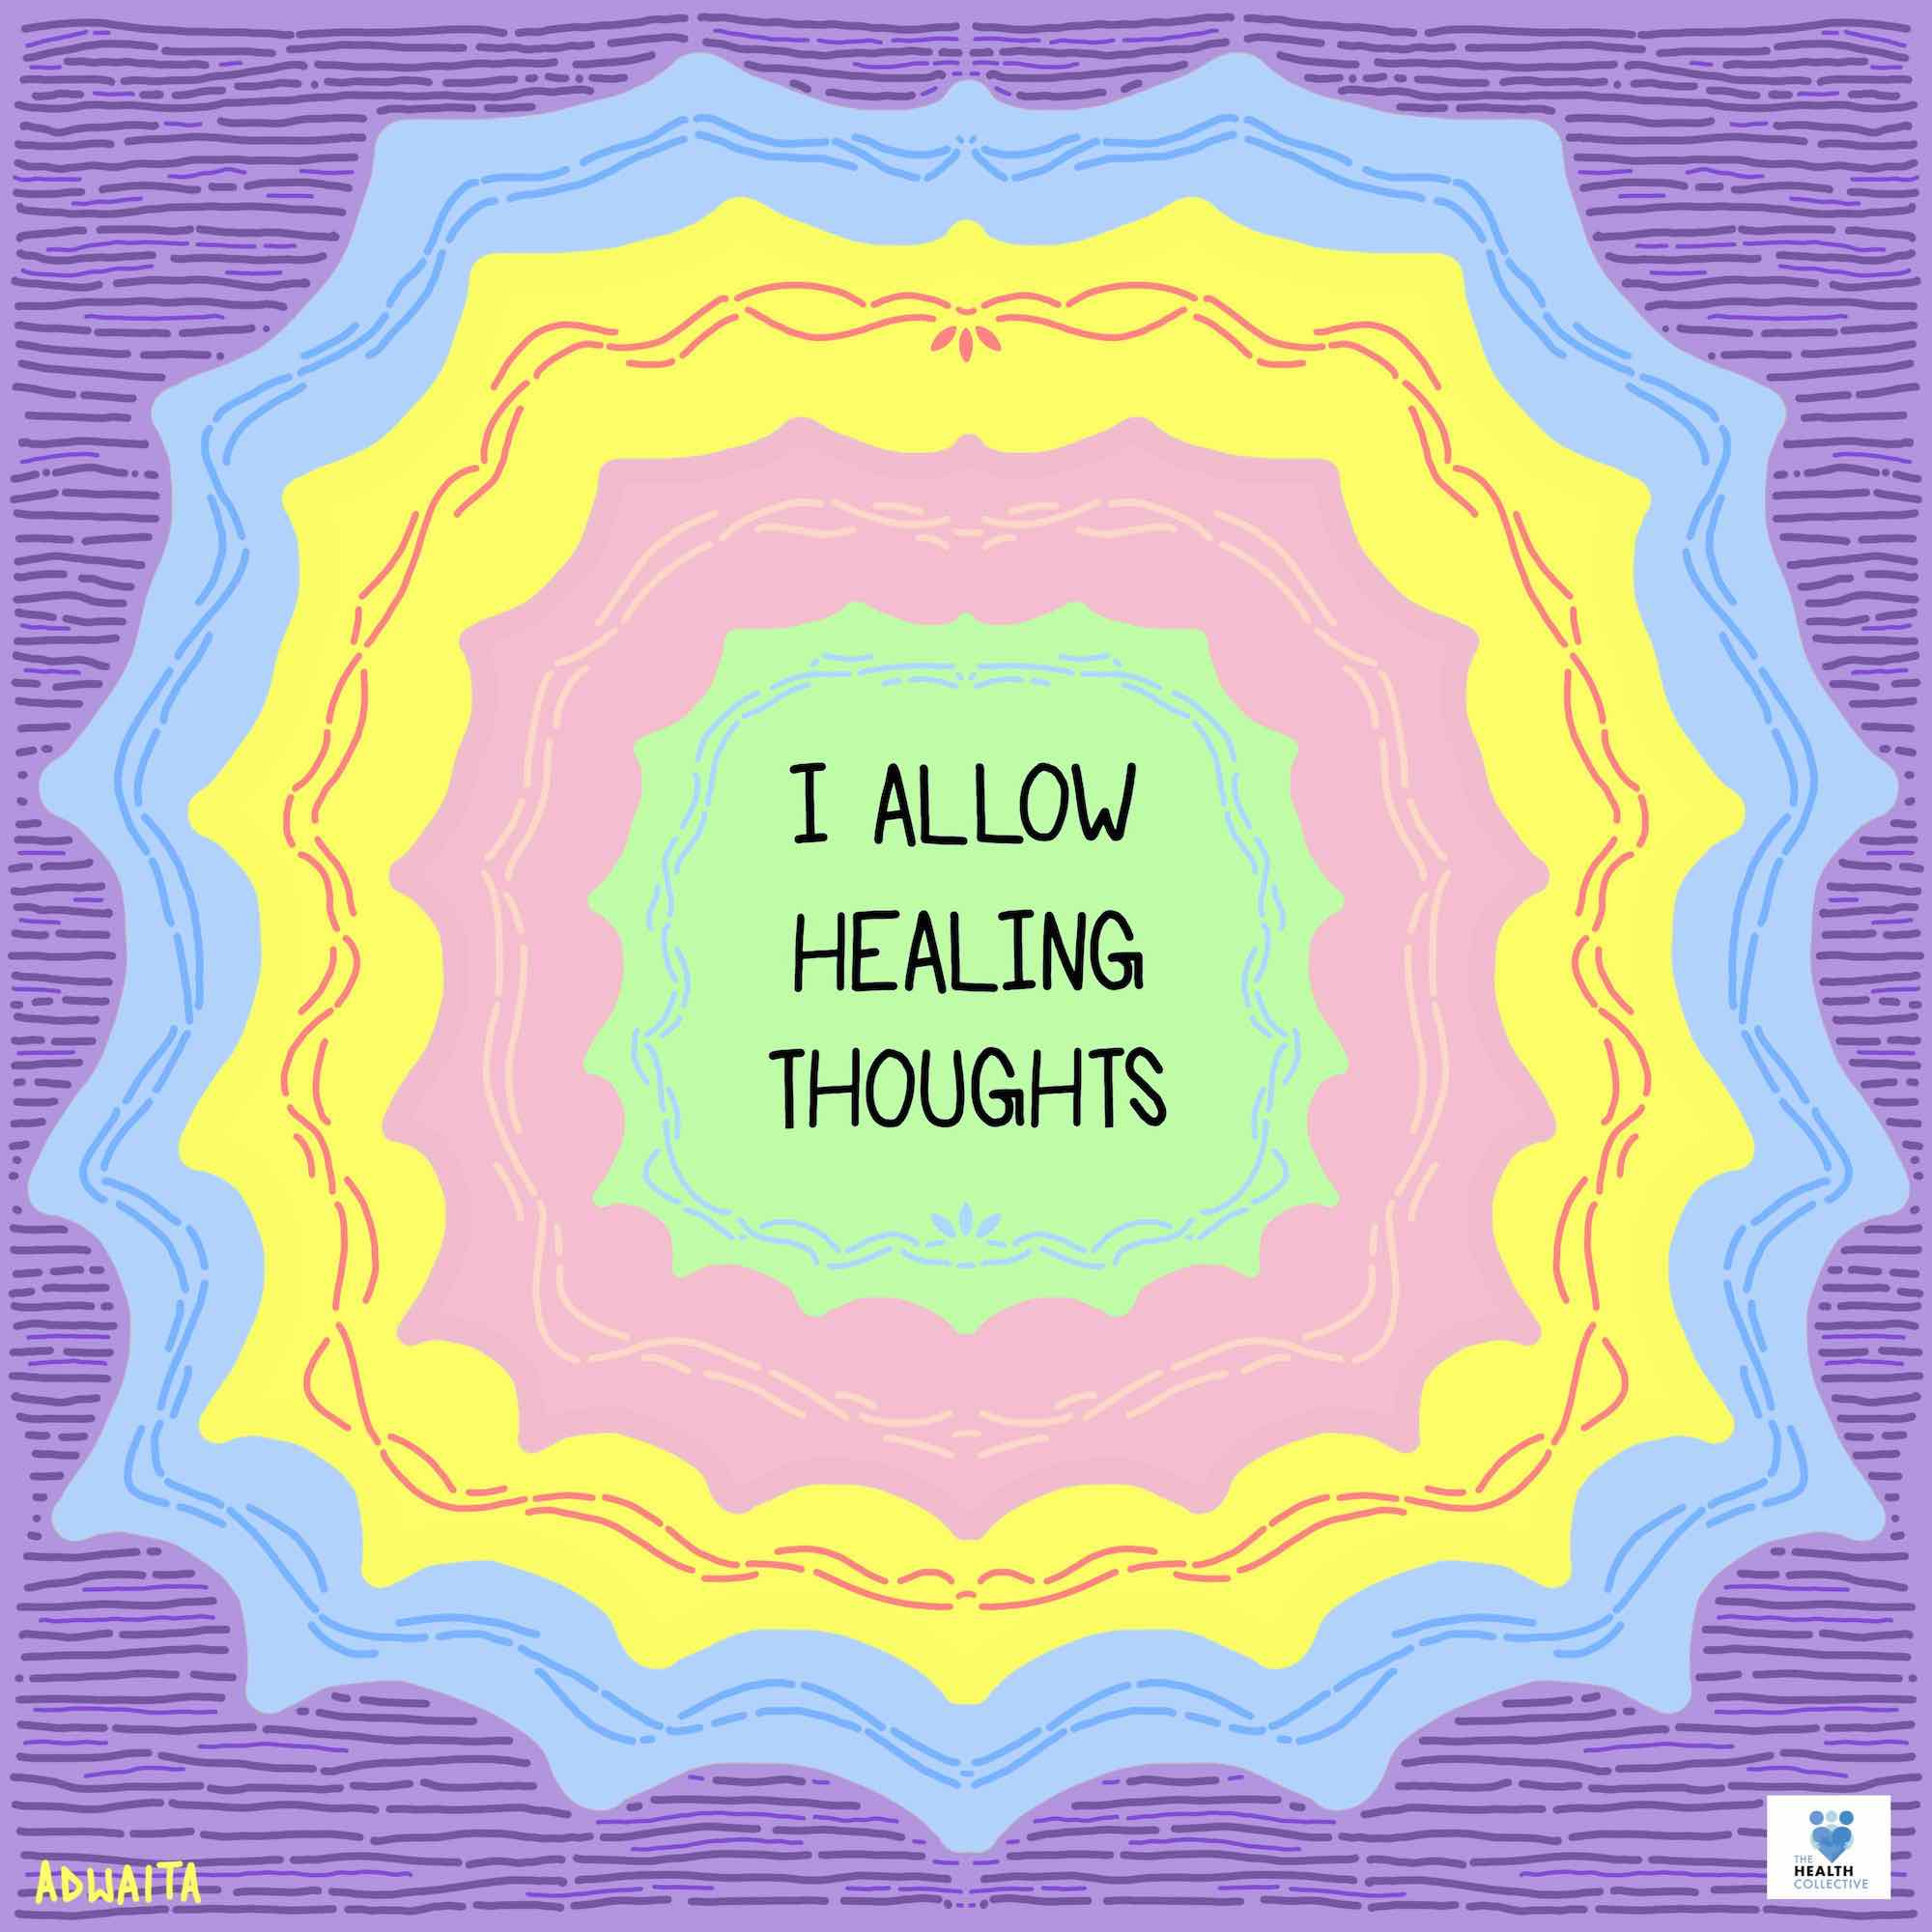 Health Collective Affirmation Healing